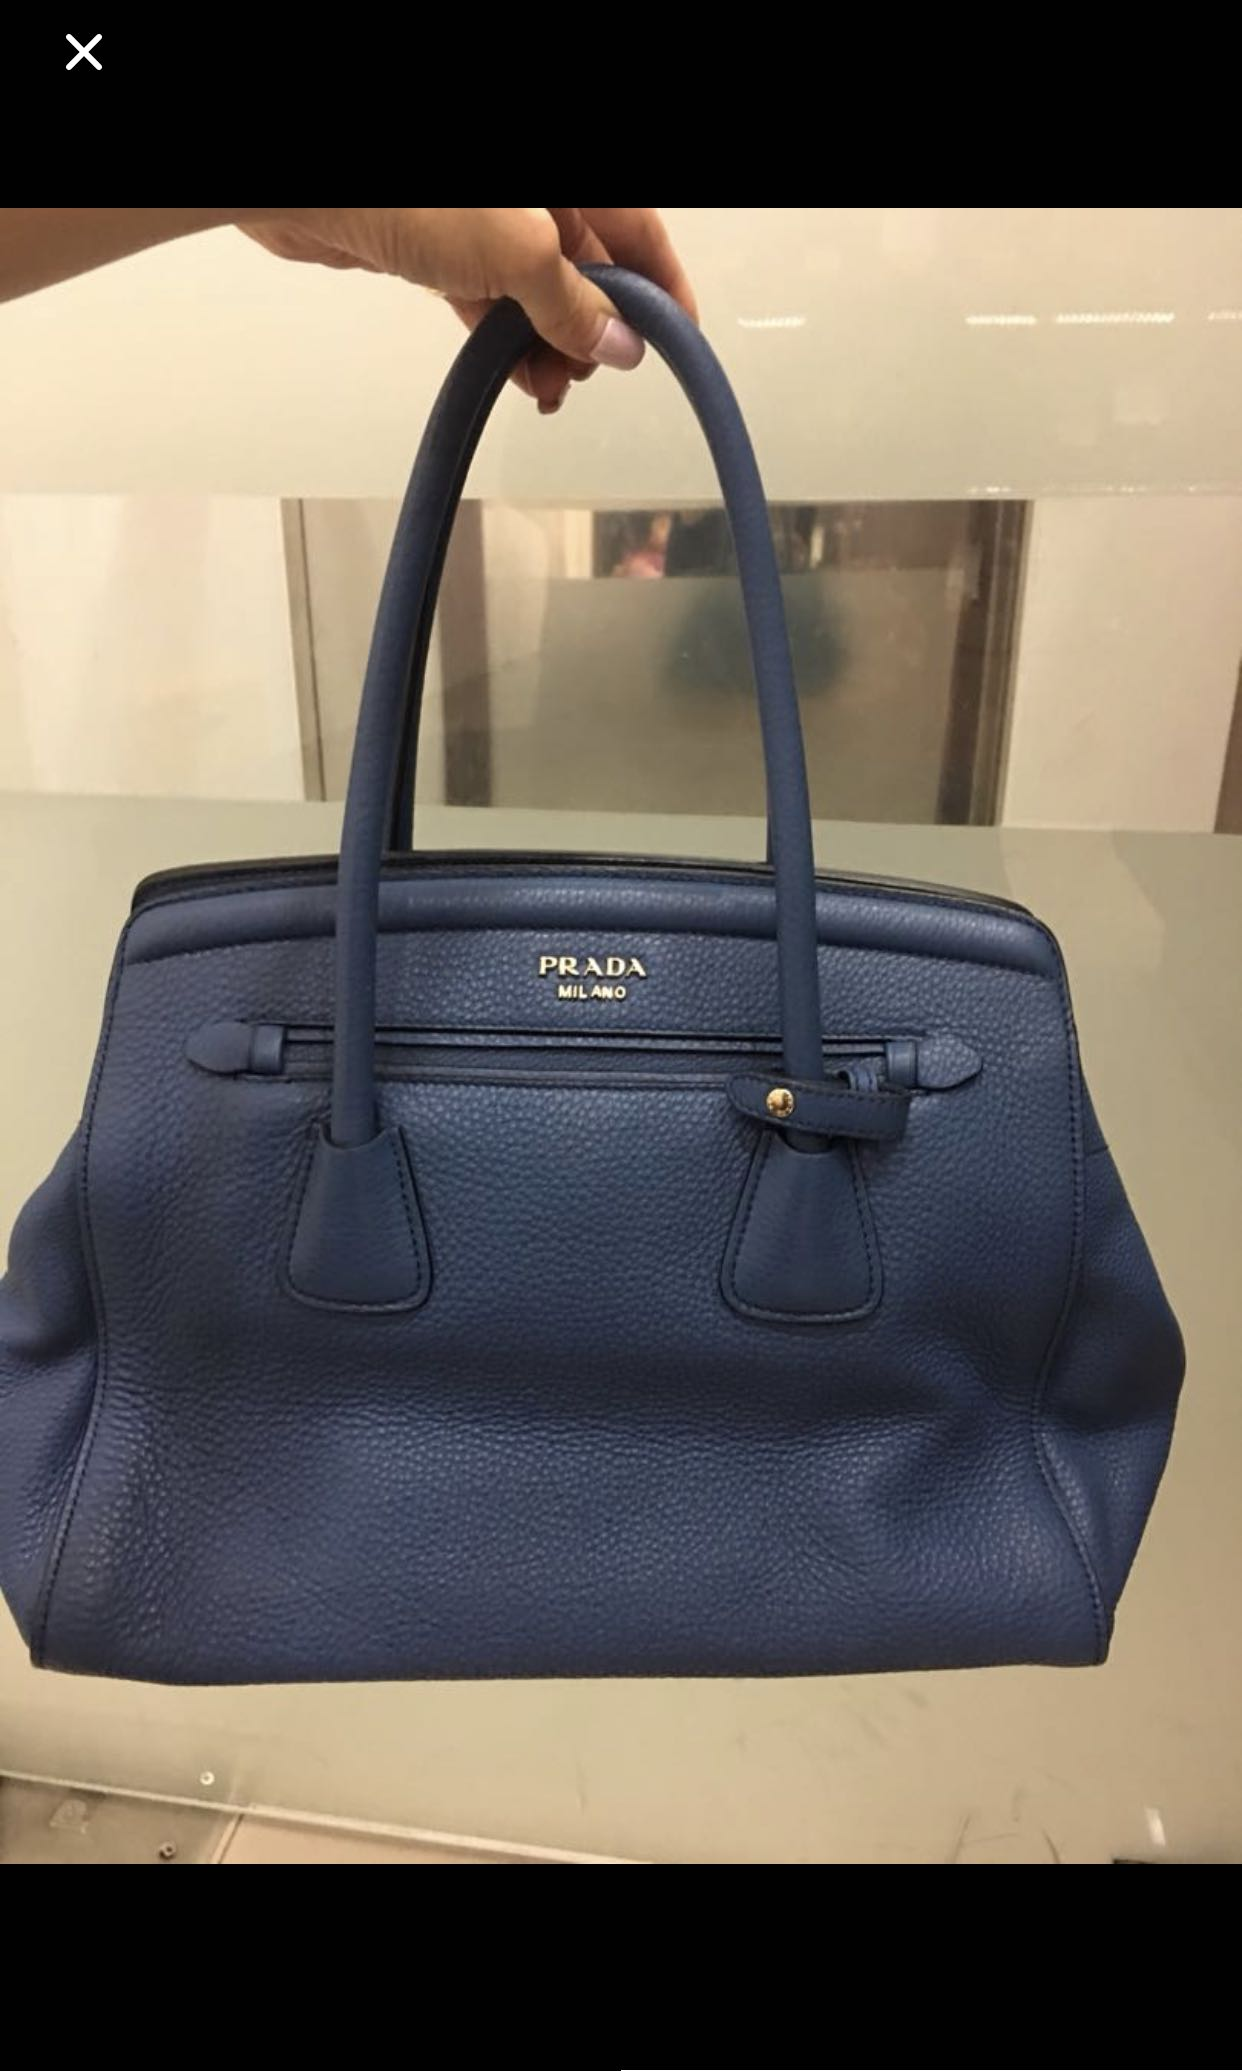 Relocation Clearance Sale   Authentic PRADA Bag in Blue Grained Leather eee05ec61fd70